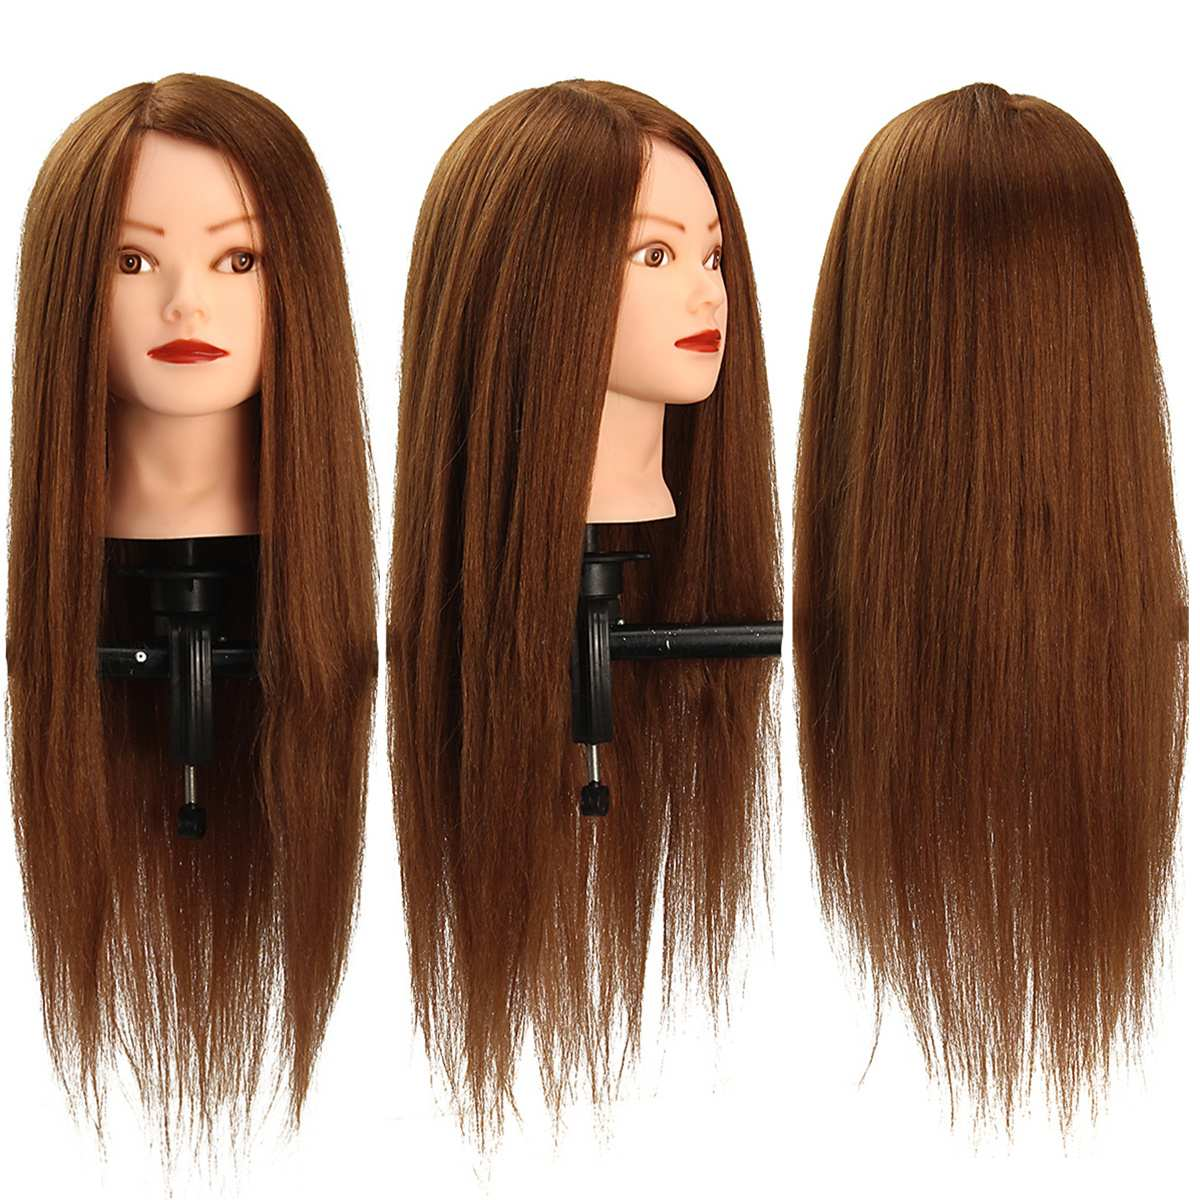 24 Inch 100% Real Human Hair Brown Straight Hair Training Head Hairdressing Practice Training Mannequin Hair Model Doll Head